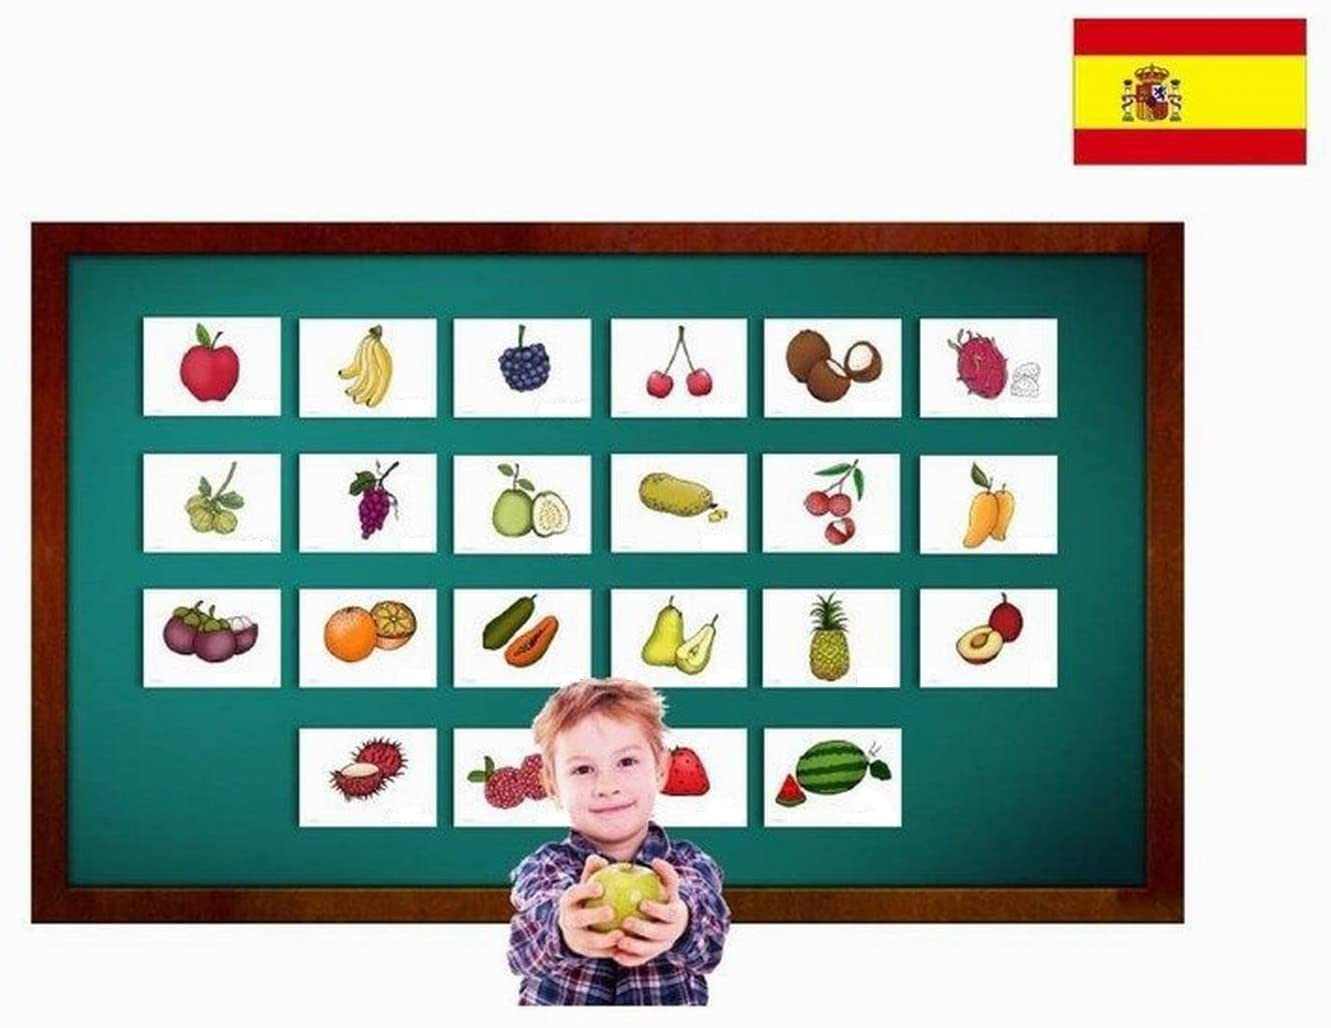 Fruit Flashcards in Spanish Language - Flash Cards with Matching Bingo Game for Toddlers, Kids, Children and Adults - Size 5.83 × 8.27 in - DIN A5